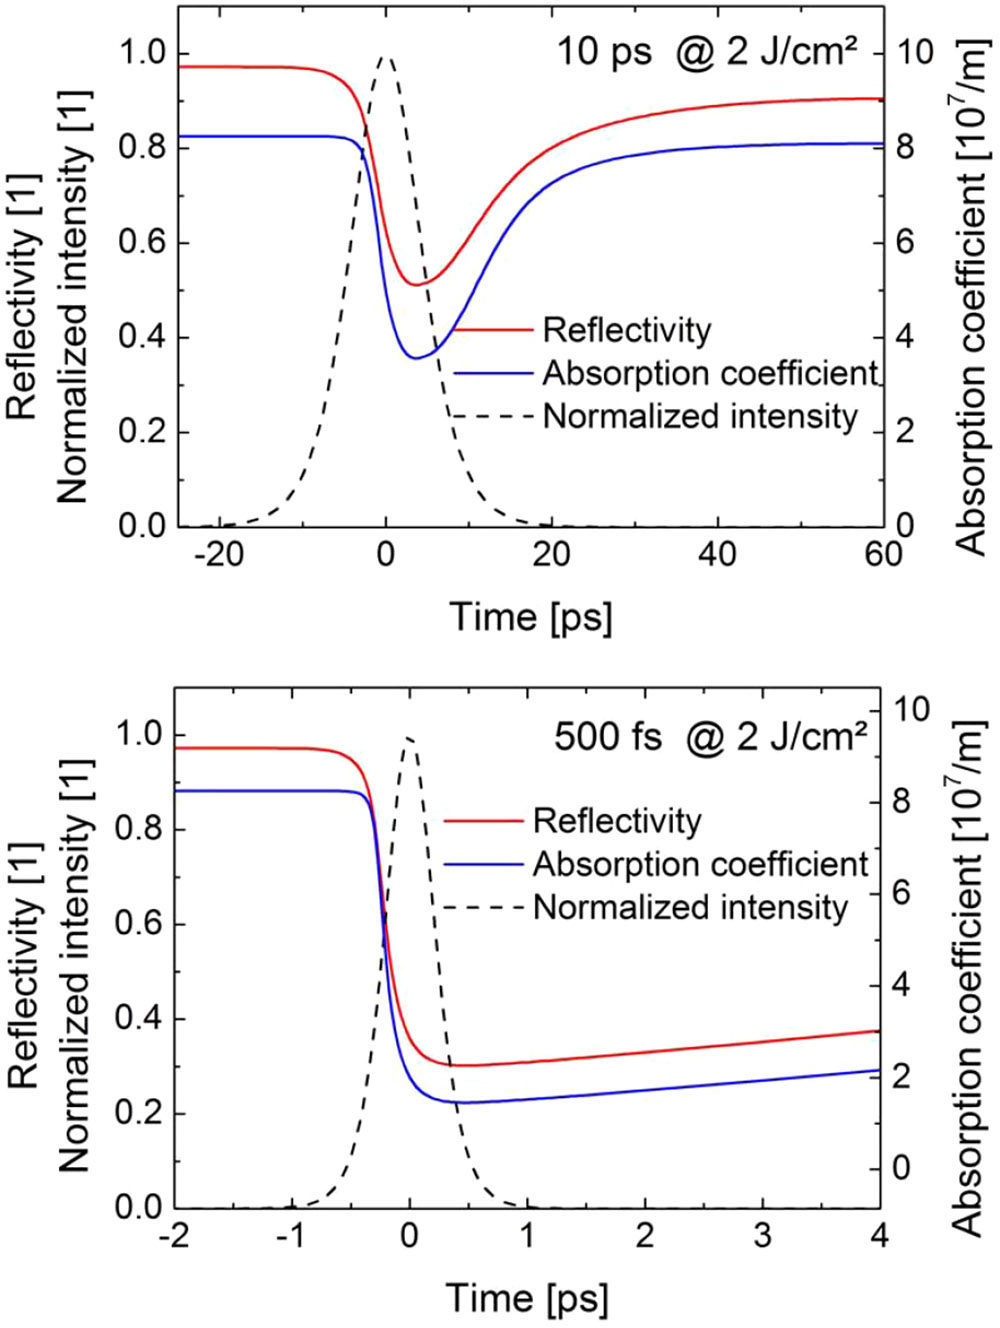 Understanding laser ablation efficiency spie homepage spie temporal variations in reflectivity and the absorption coefficient for a copper target as simulated in the optical model results for pulse durations of pooptronica